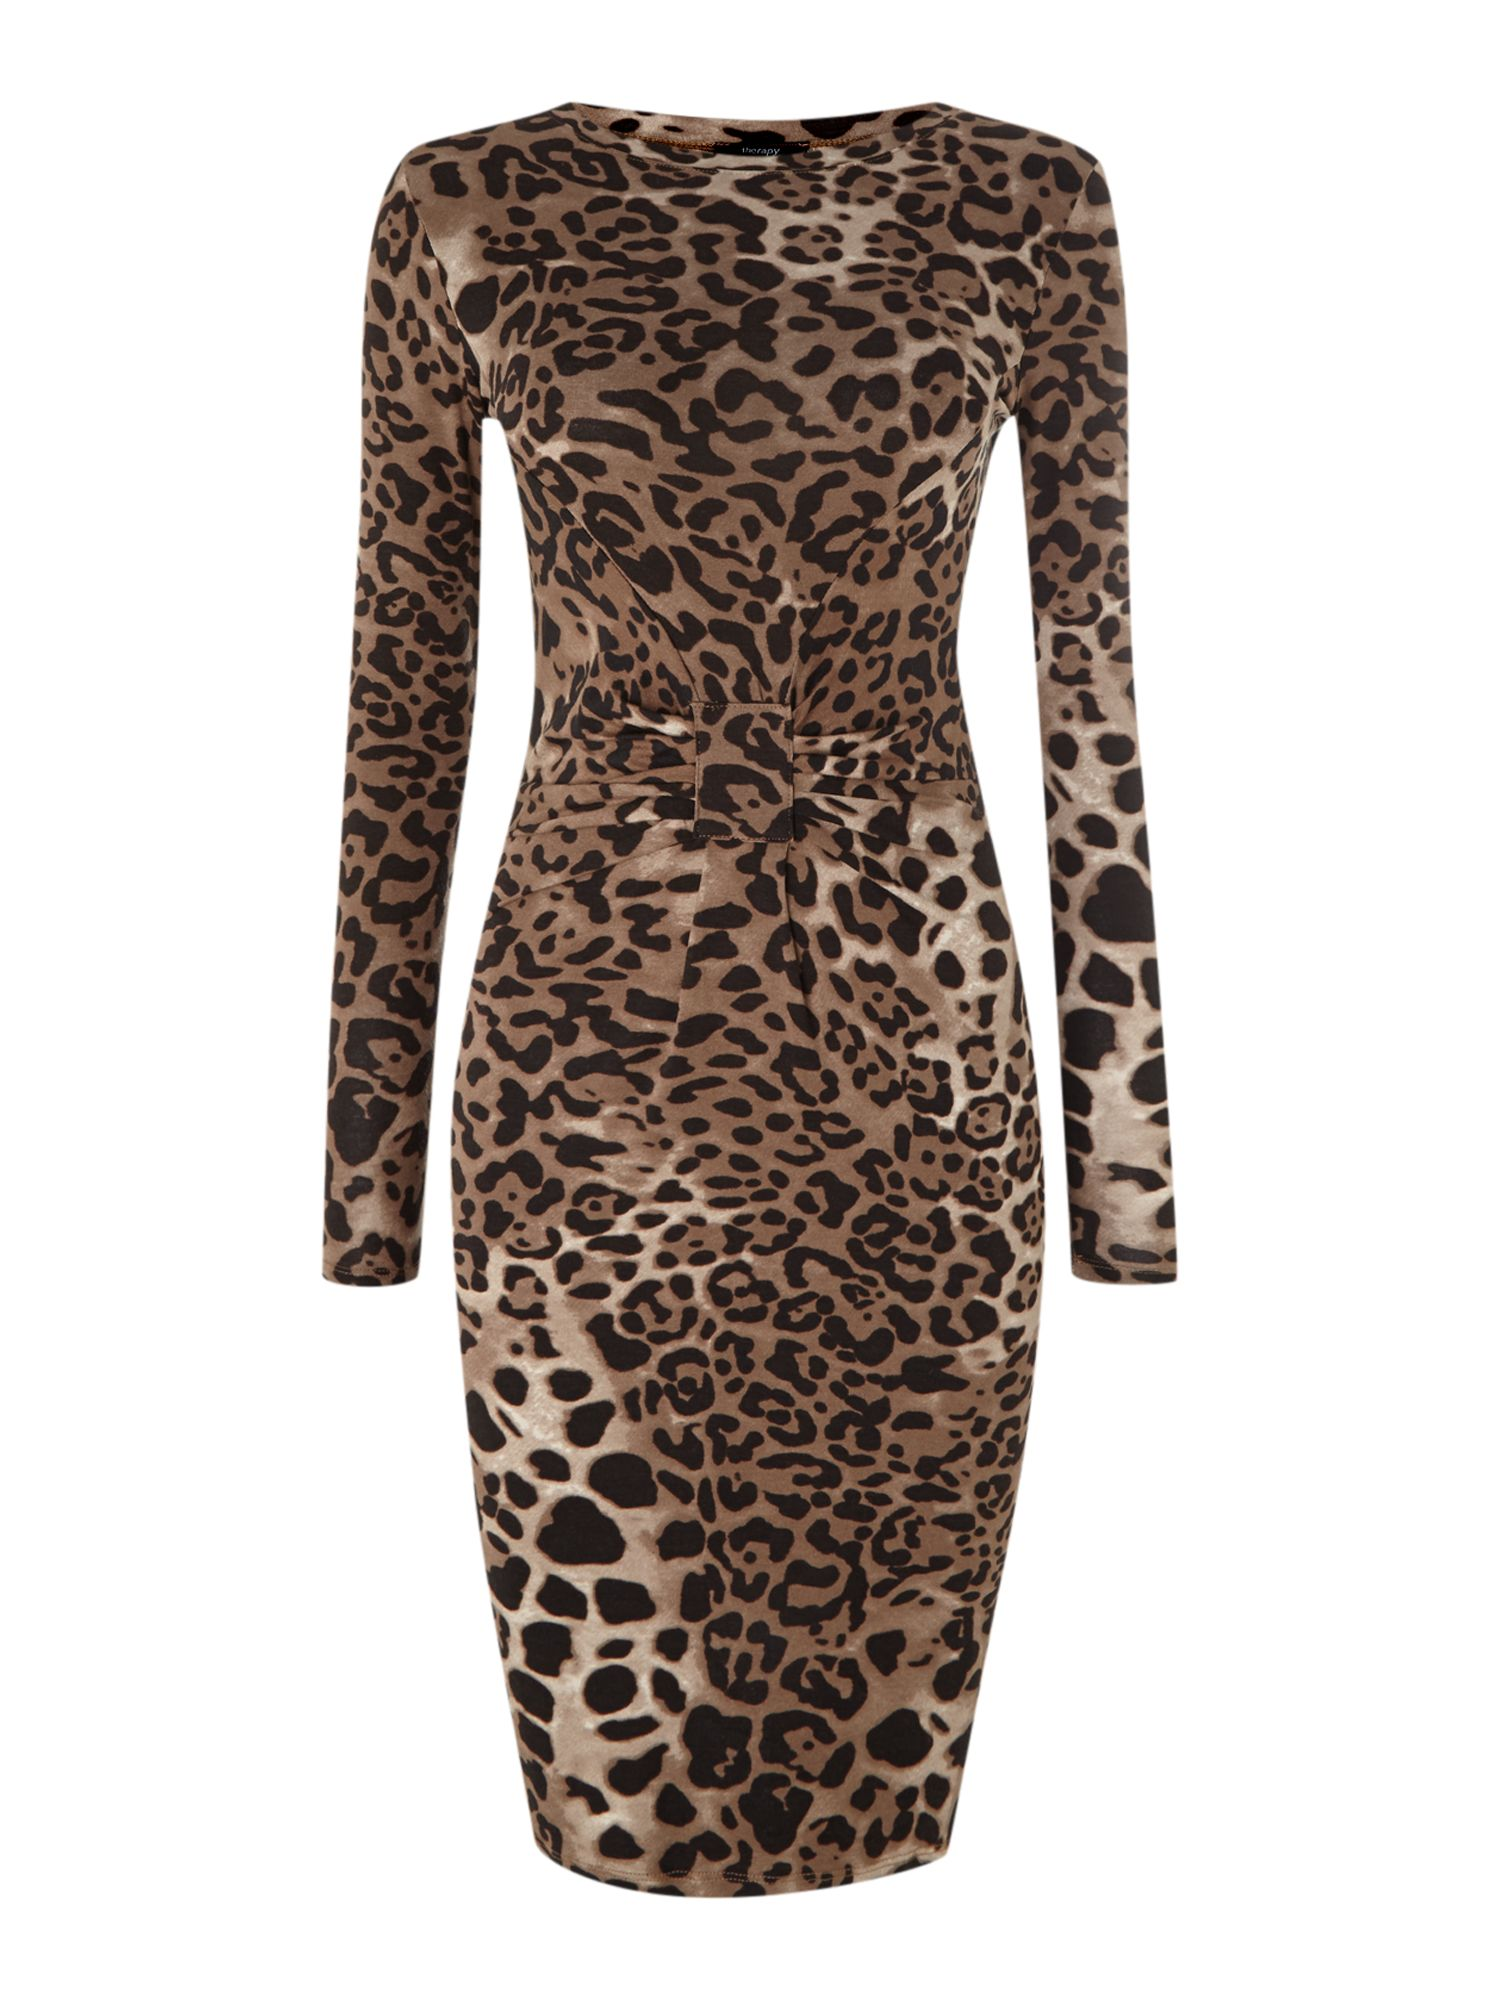 All over leopard print tube dress